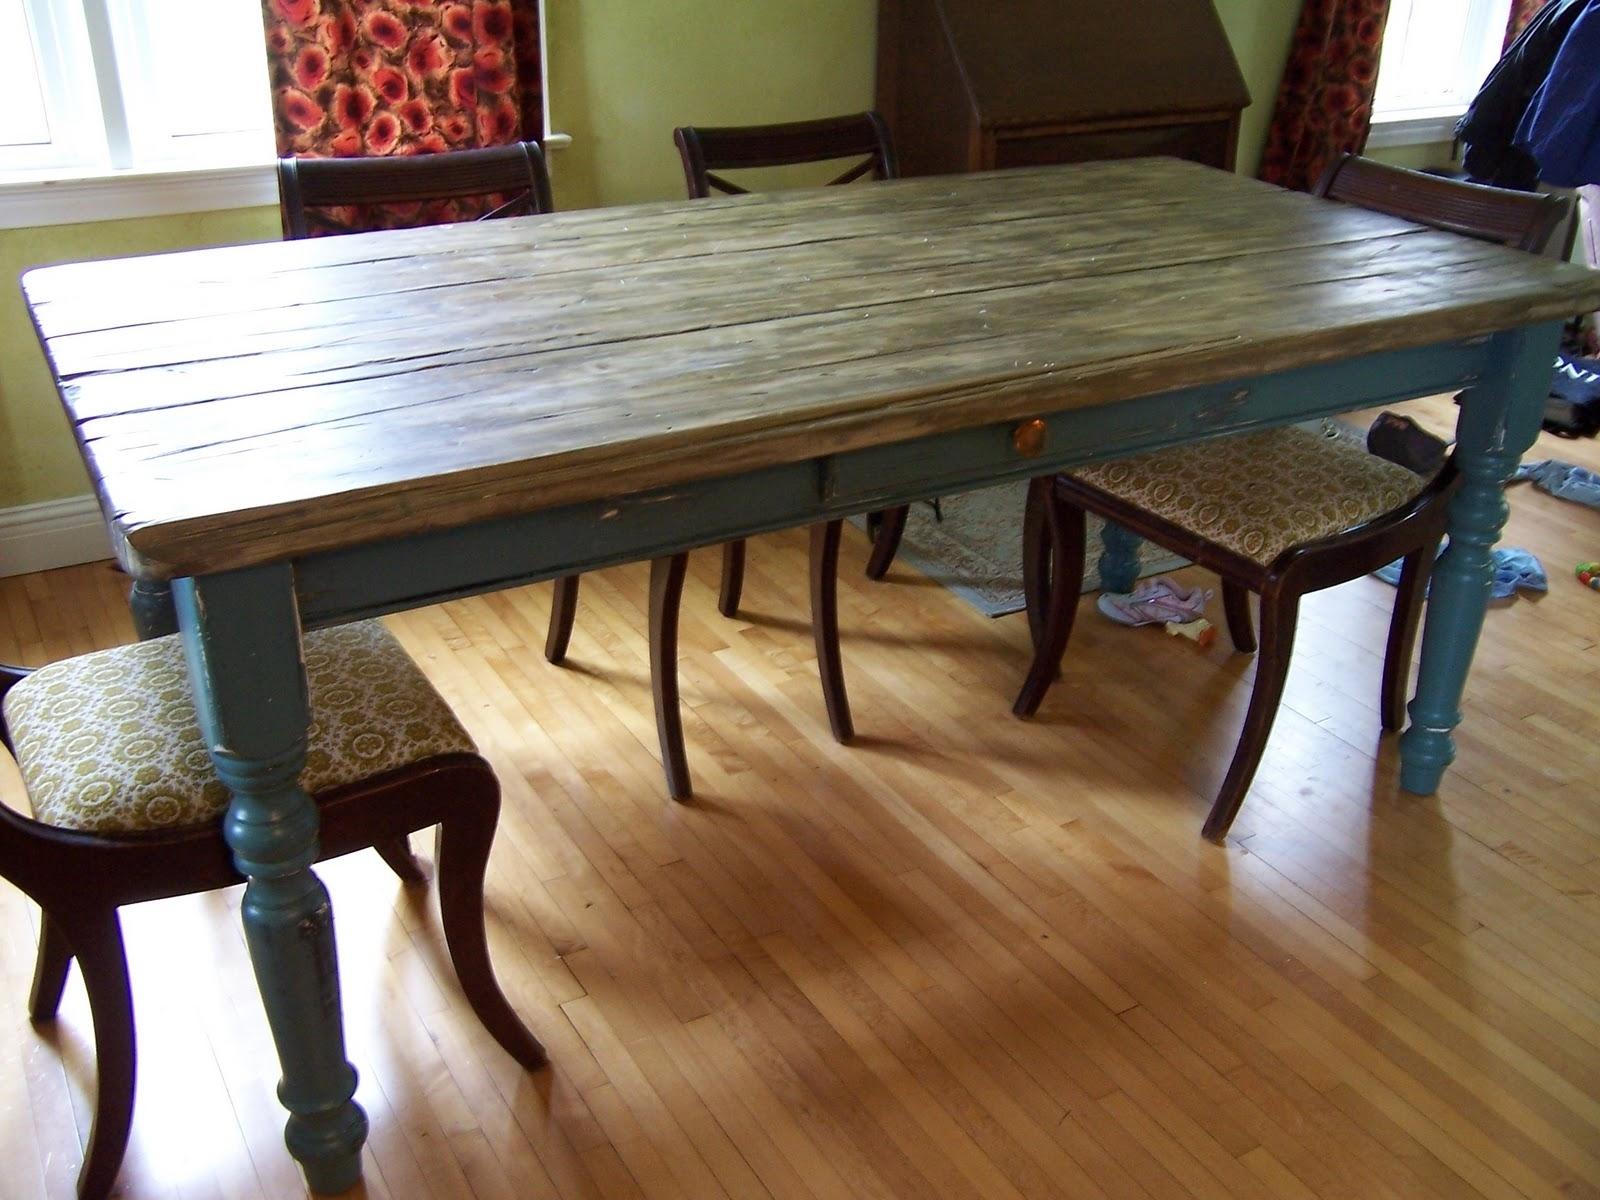 Rustic Farm Dining Tables | Table Regarding Best And Newest Farm Dining Tables (Image 14 of 20)